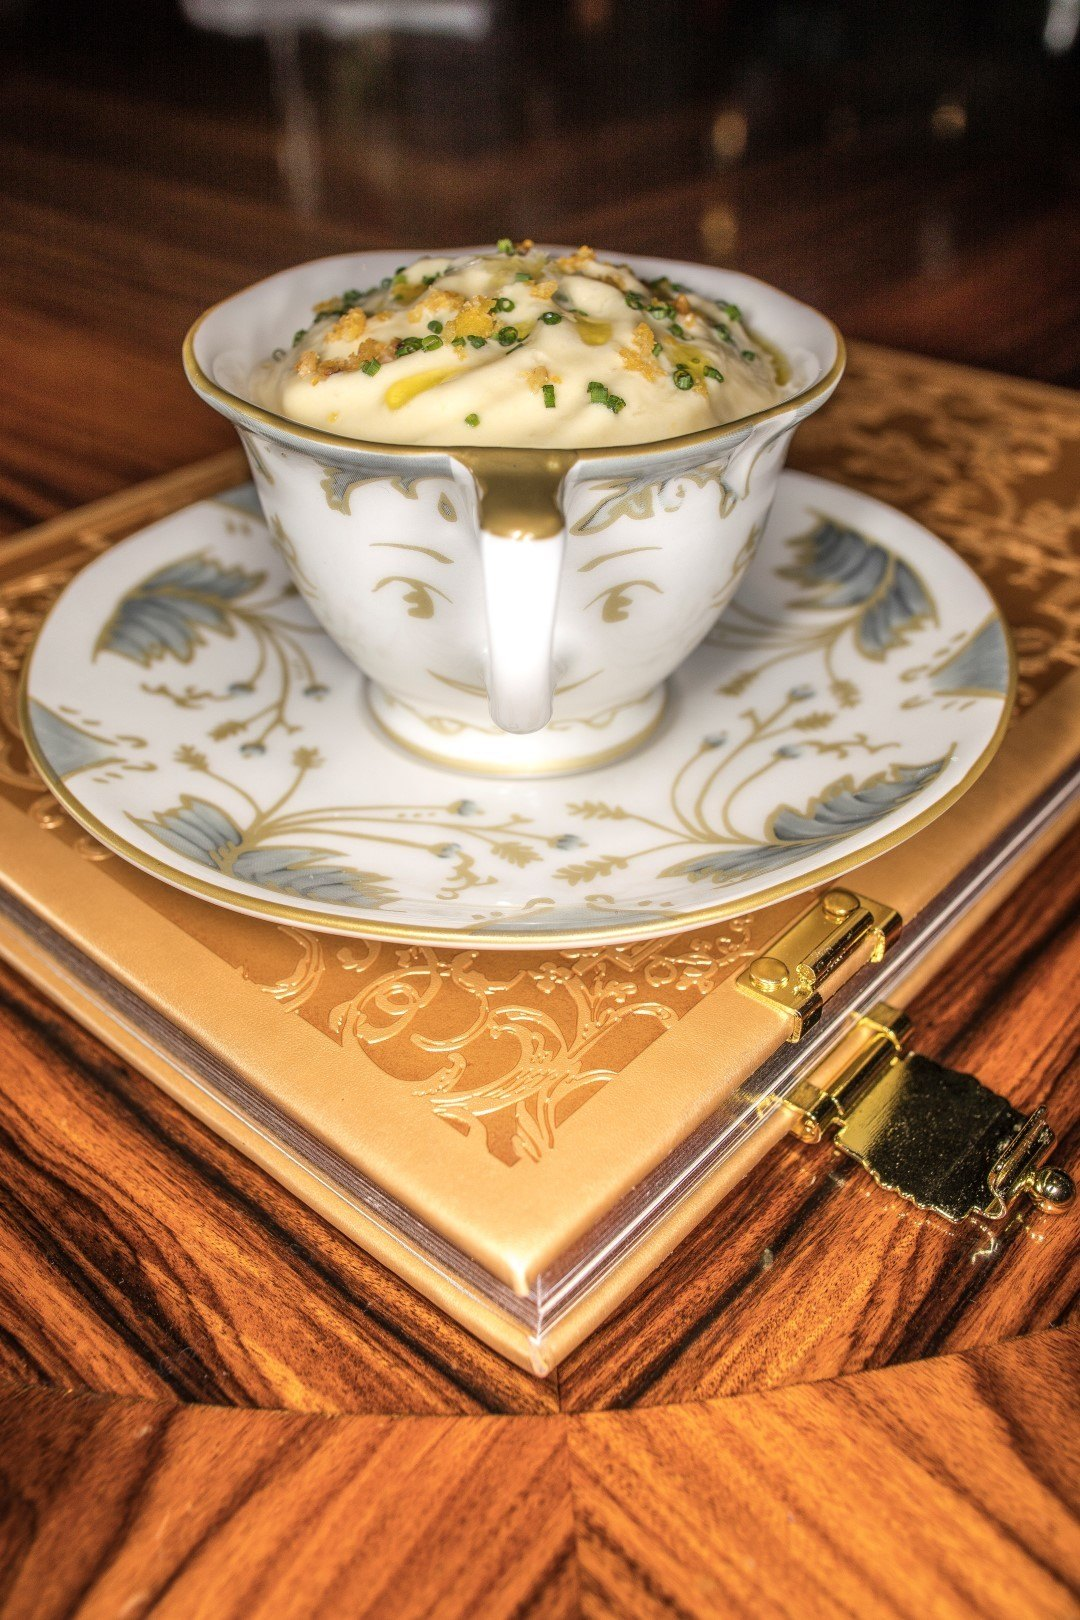 Beauty and the Beast Enchanted Tea and Be Our Guest! Experiences Available in Beverly Hills